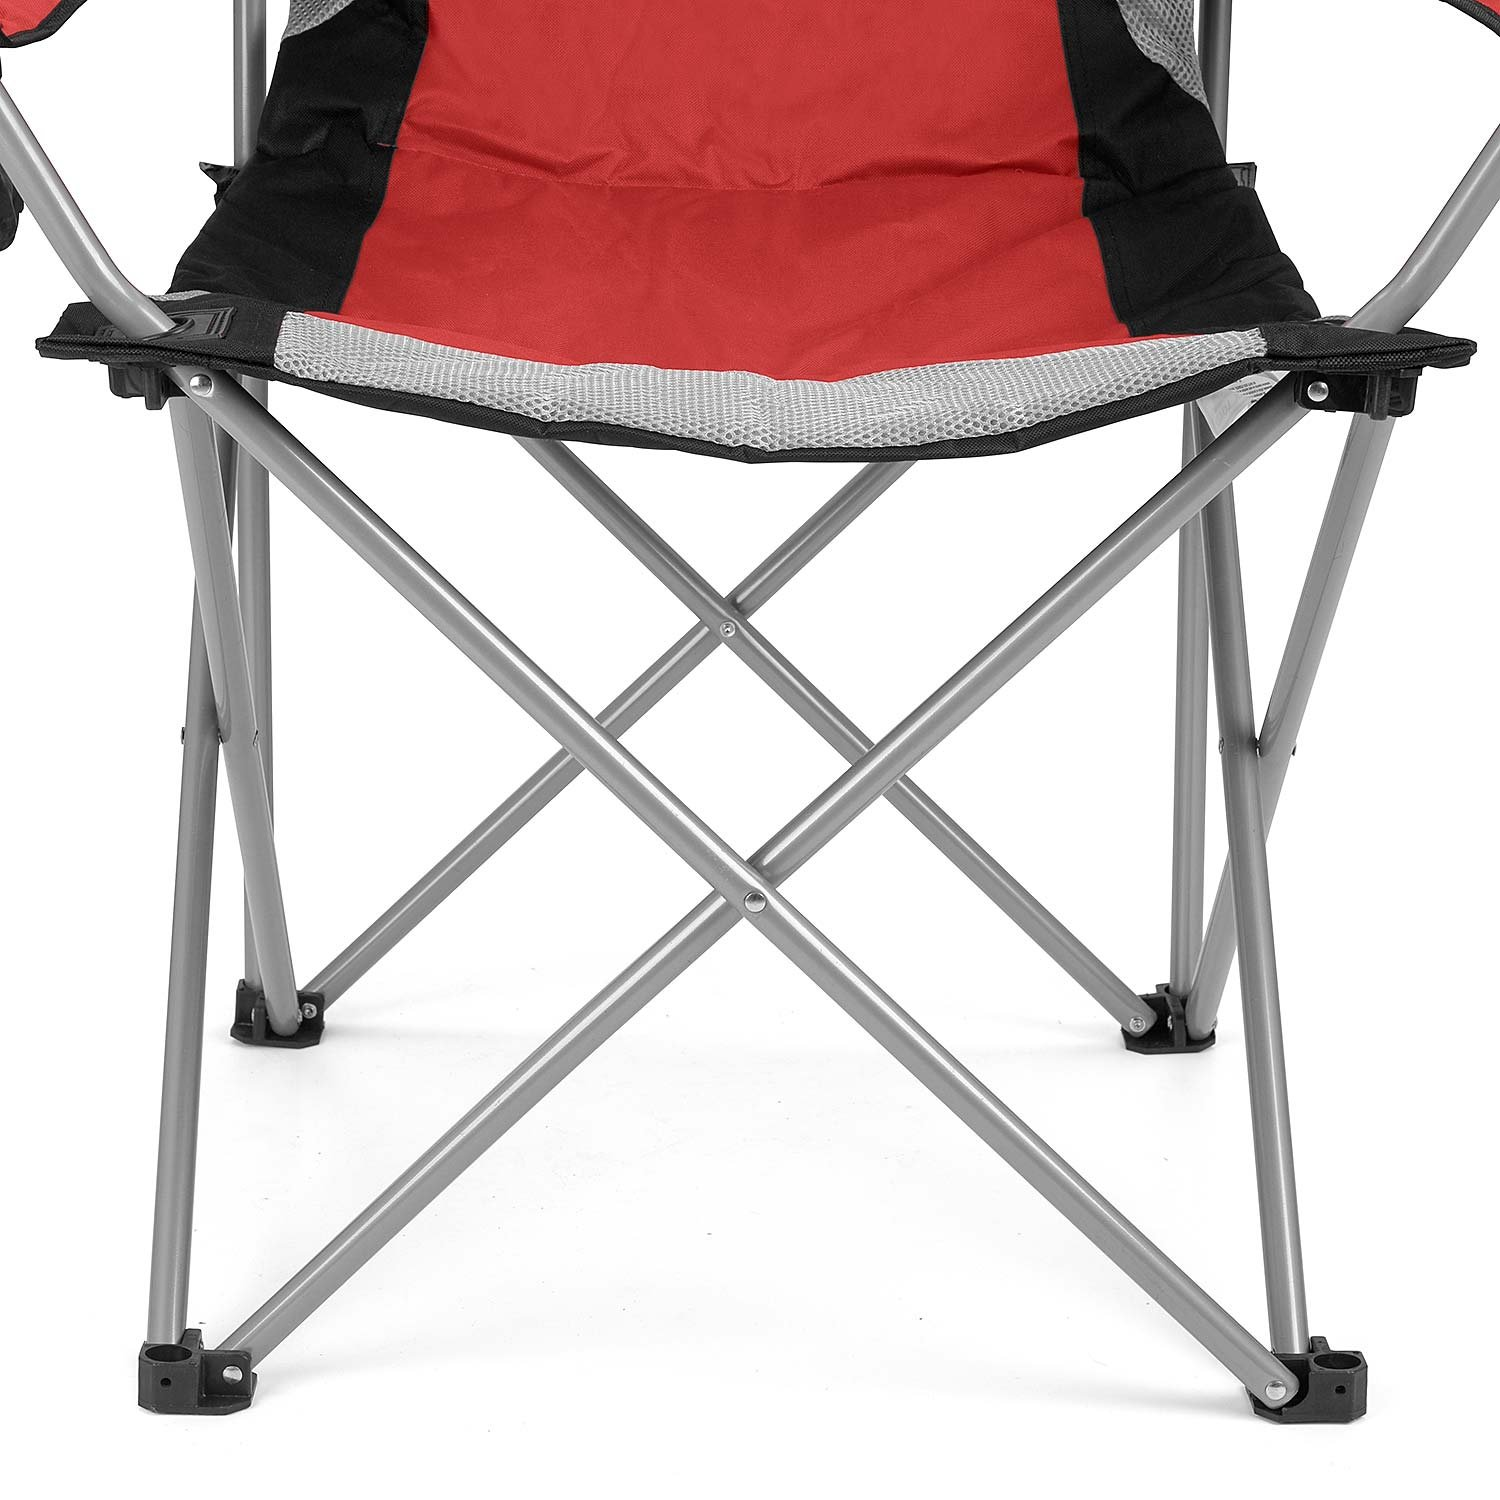 Trail Outdoor Leisure Luxury Padded Folding Camping Chair Heavy Duty High Back Directors Cup Holder